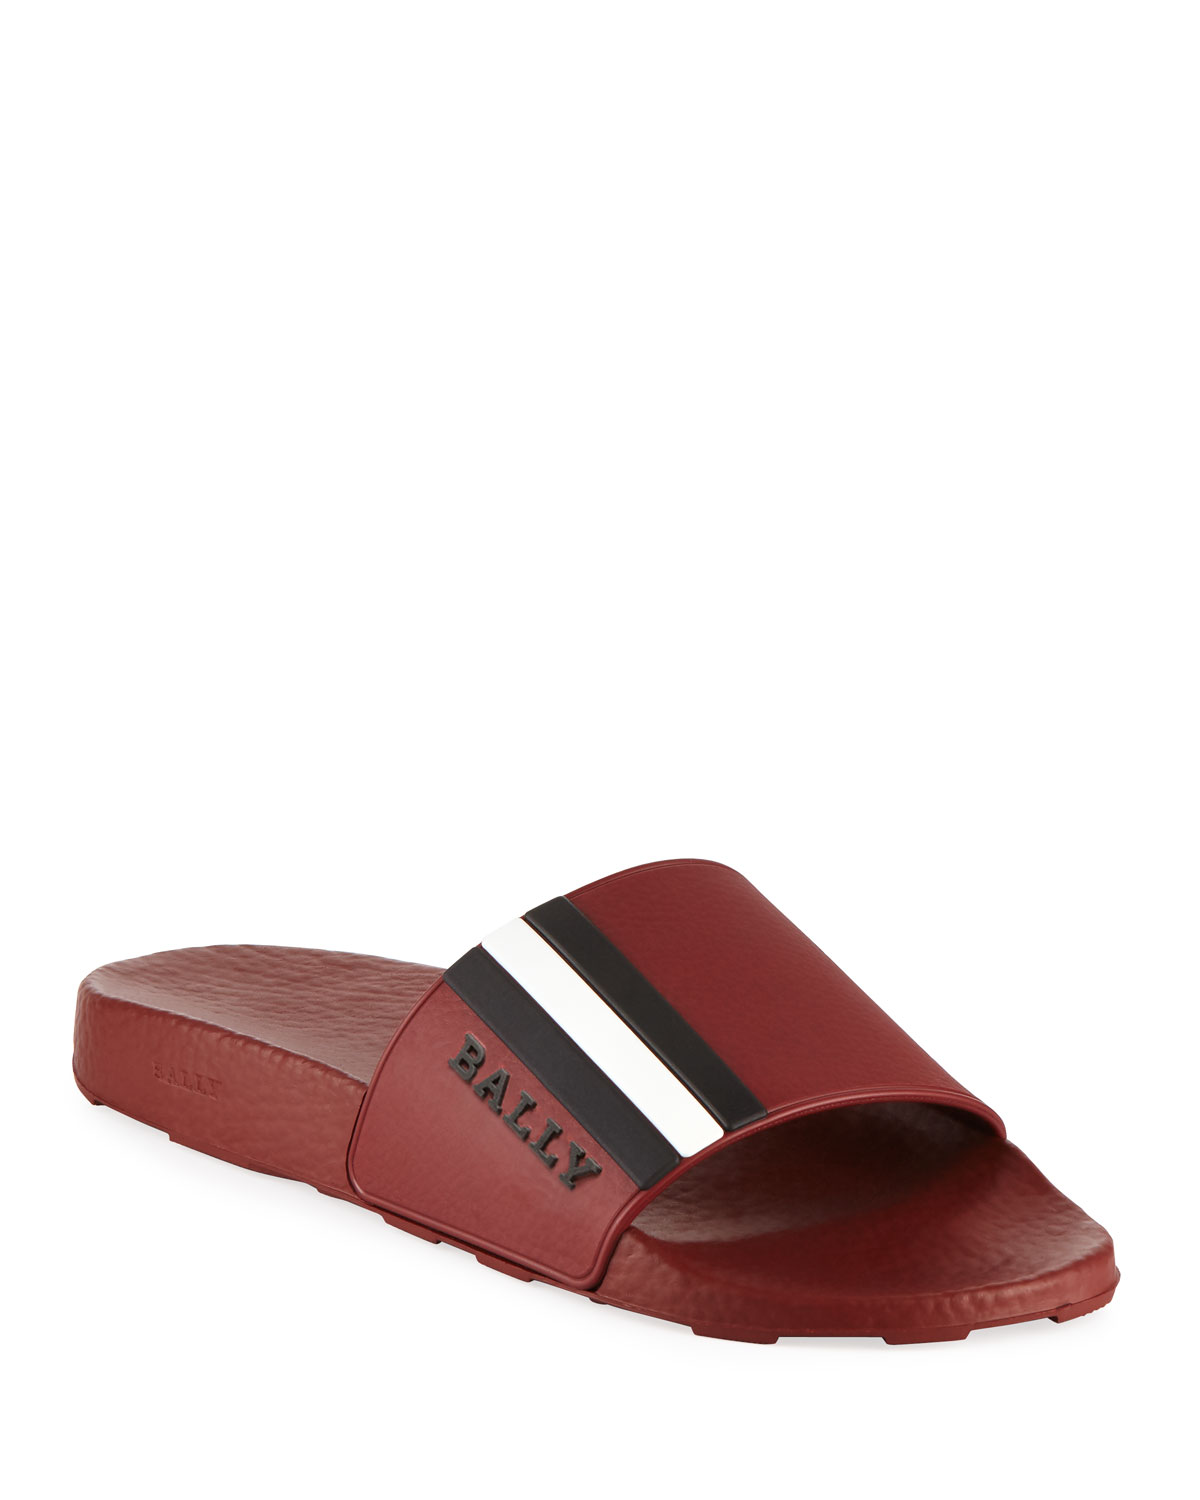 5a8d25193c60f Quick Look. Bally · Saxor Rubber Slide Sandal